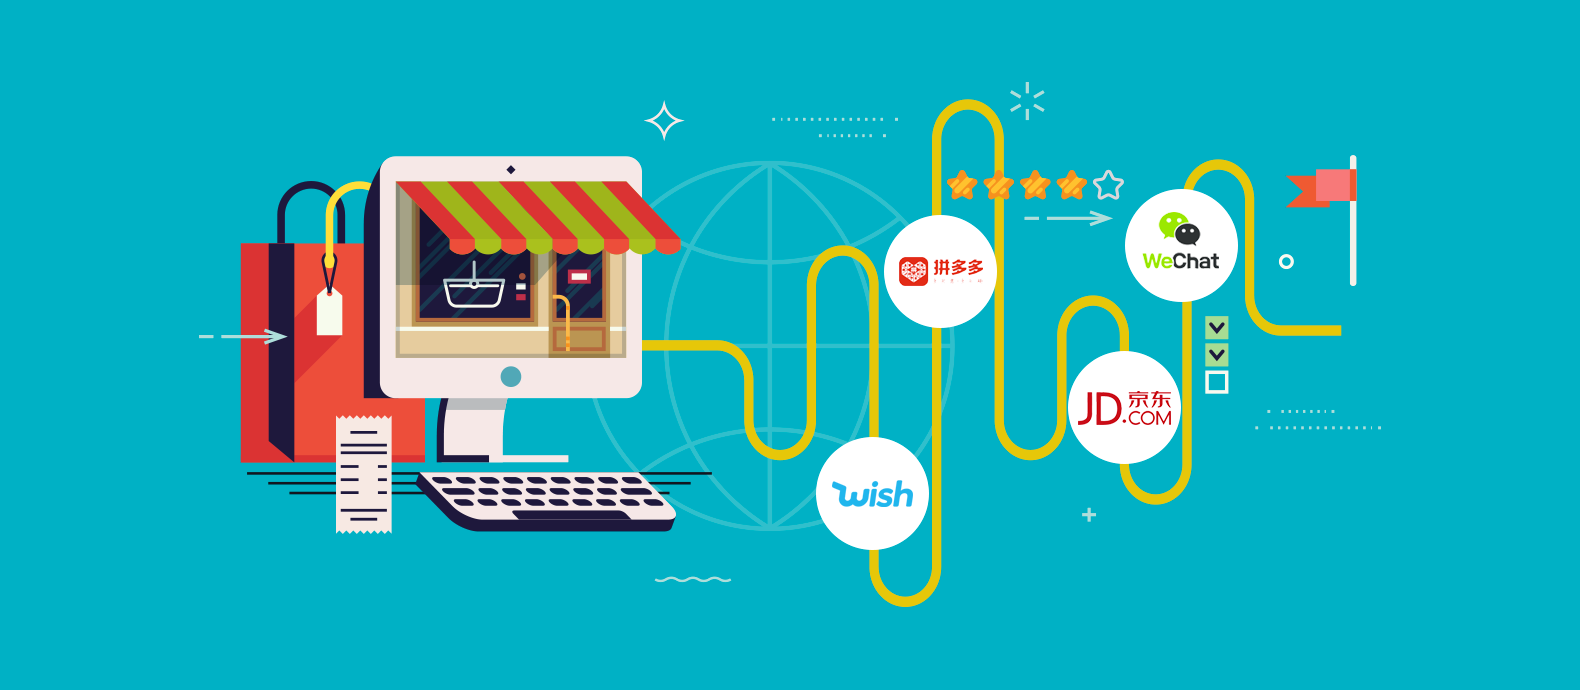 Brand protection in 2019 means tracking Wish, Pinduoduo, WeChat and JD